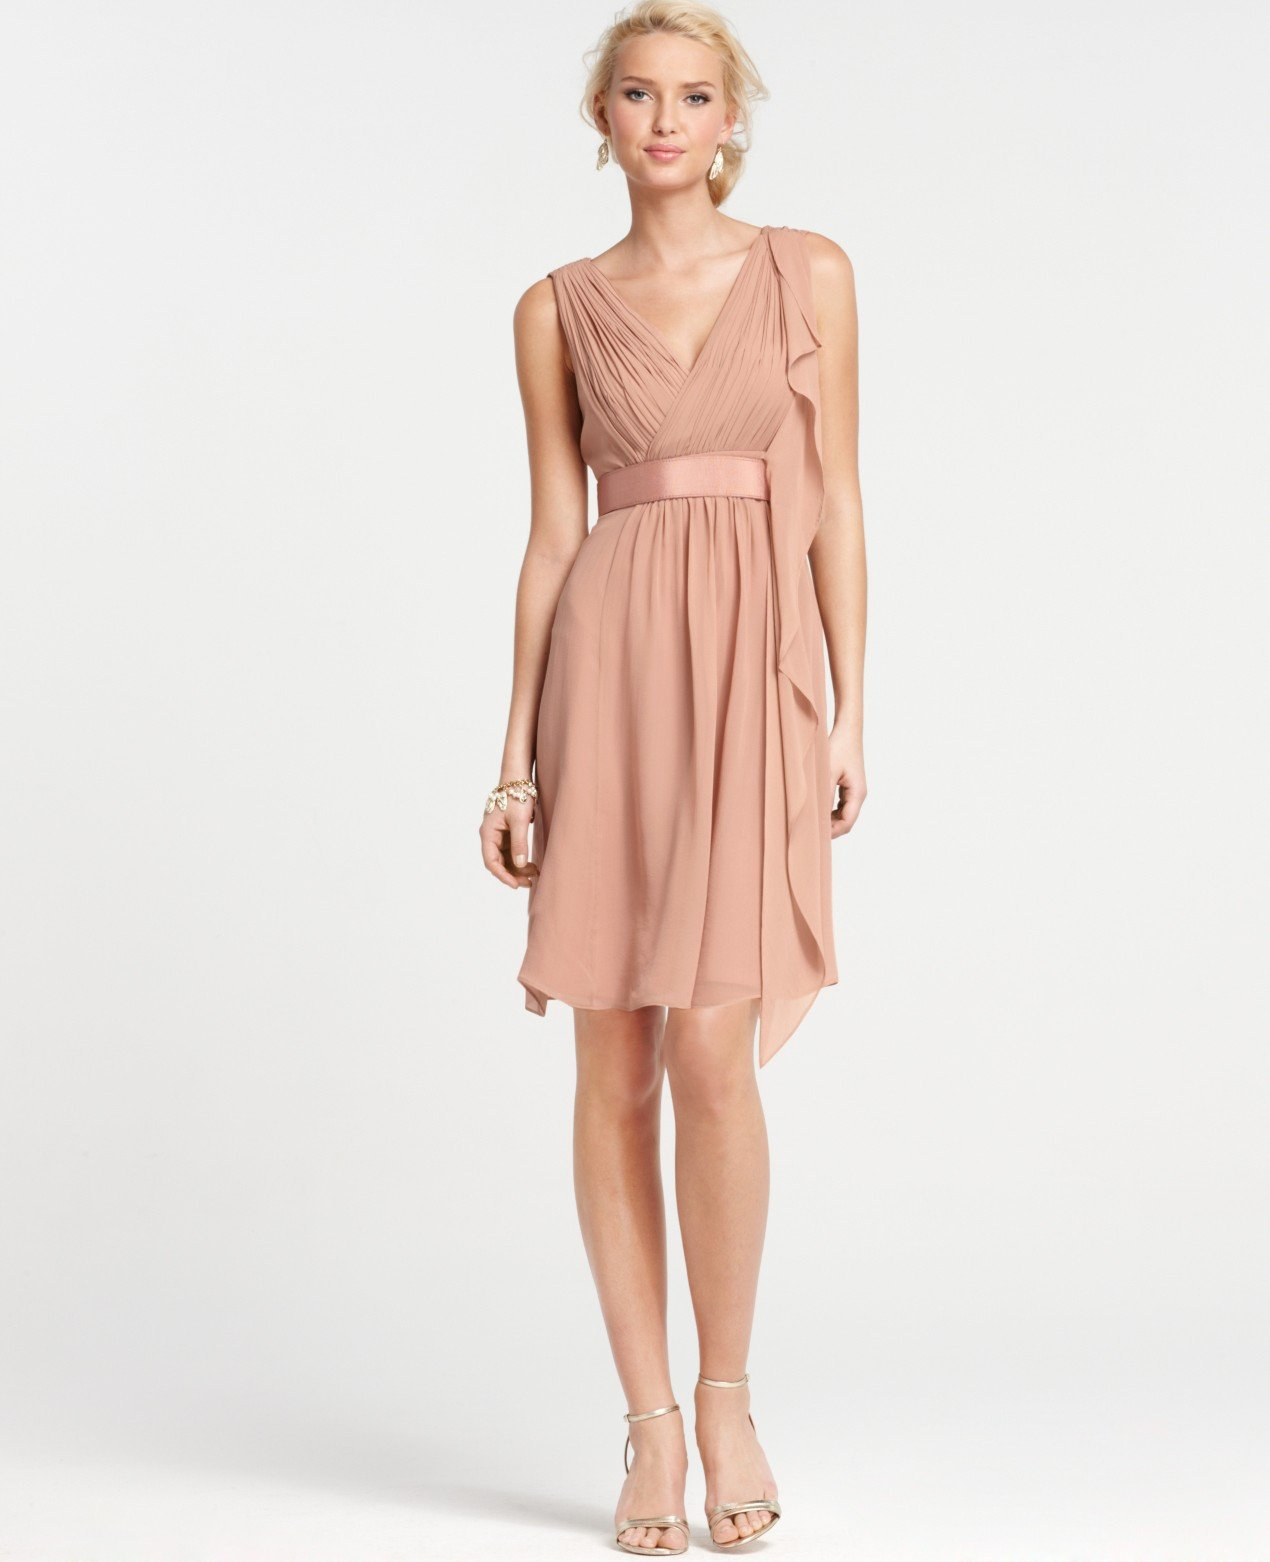 Ann taylor petite silk georgette flutter bridesmaid dress for Wedding dresses ann taylor